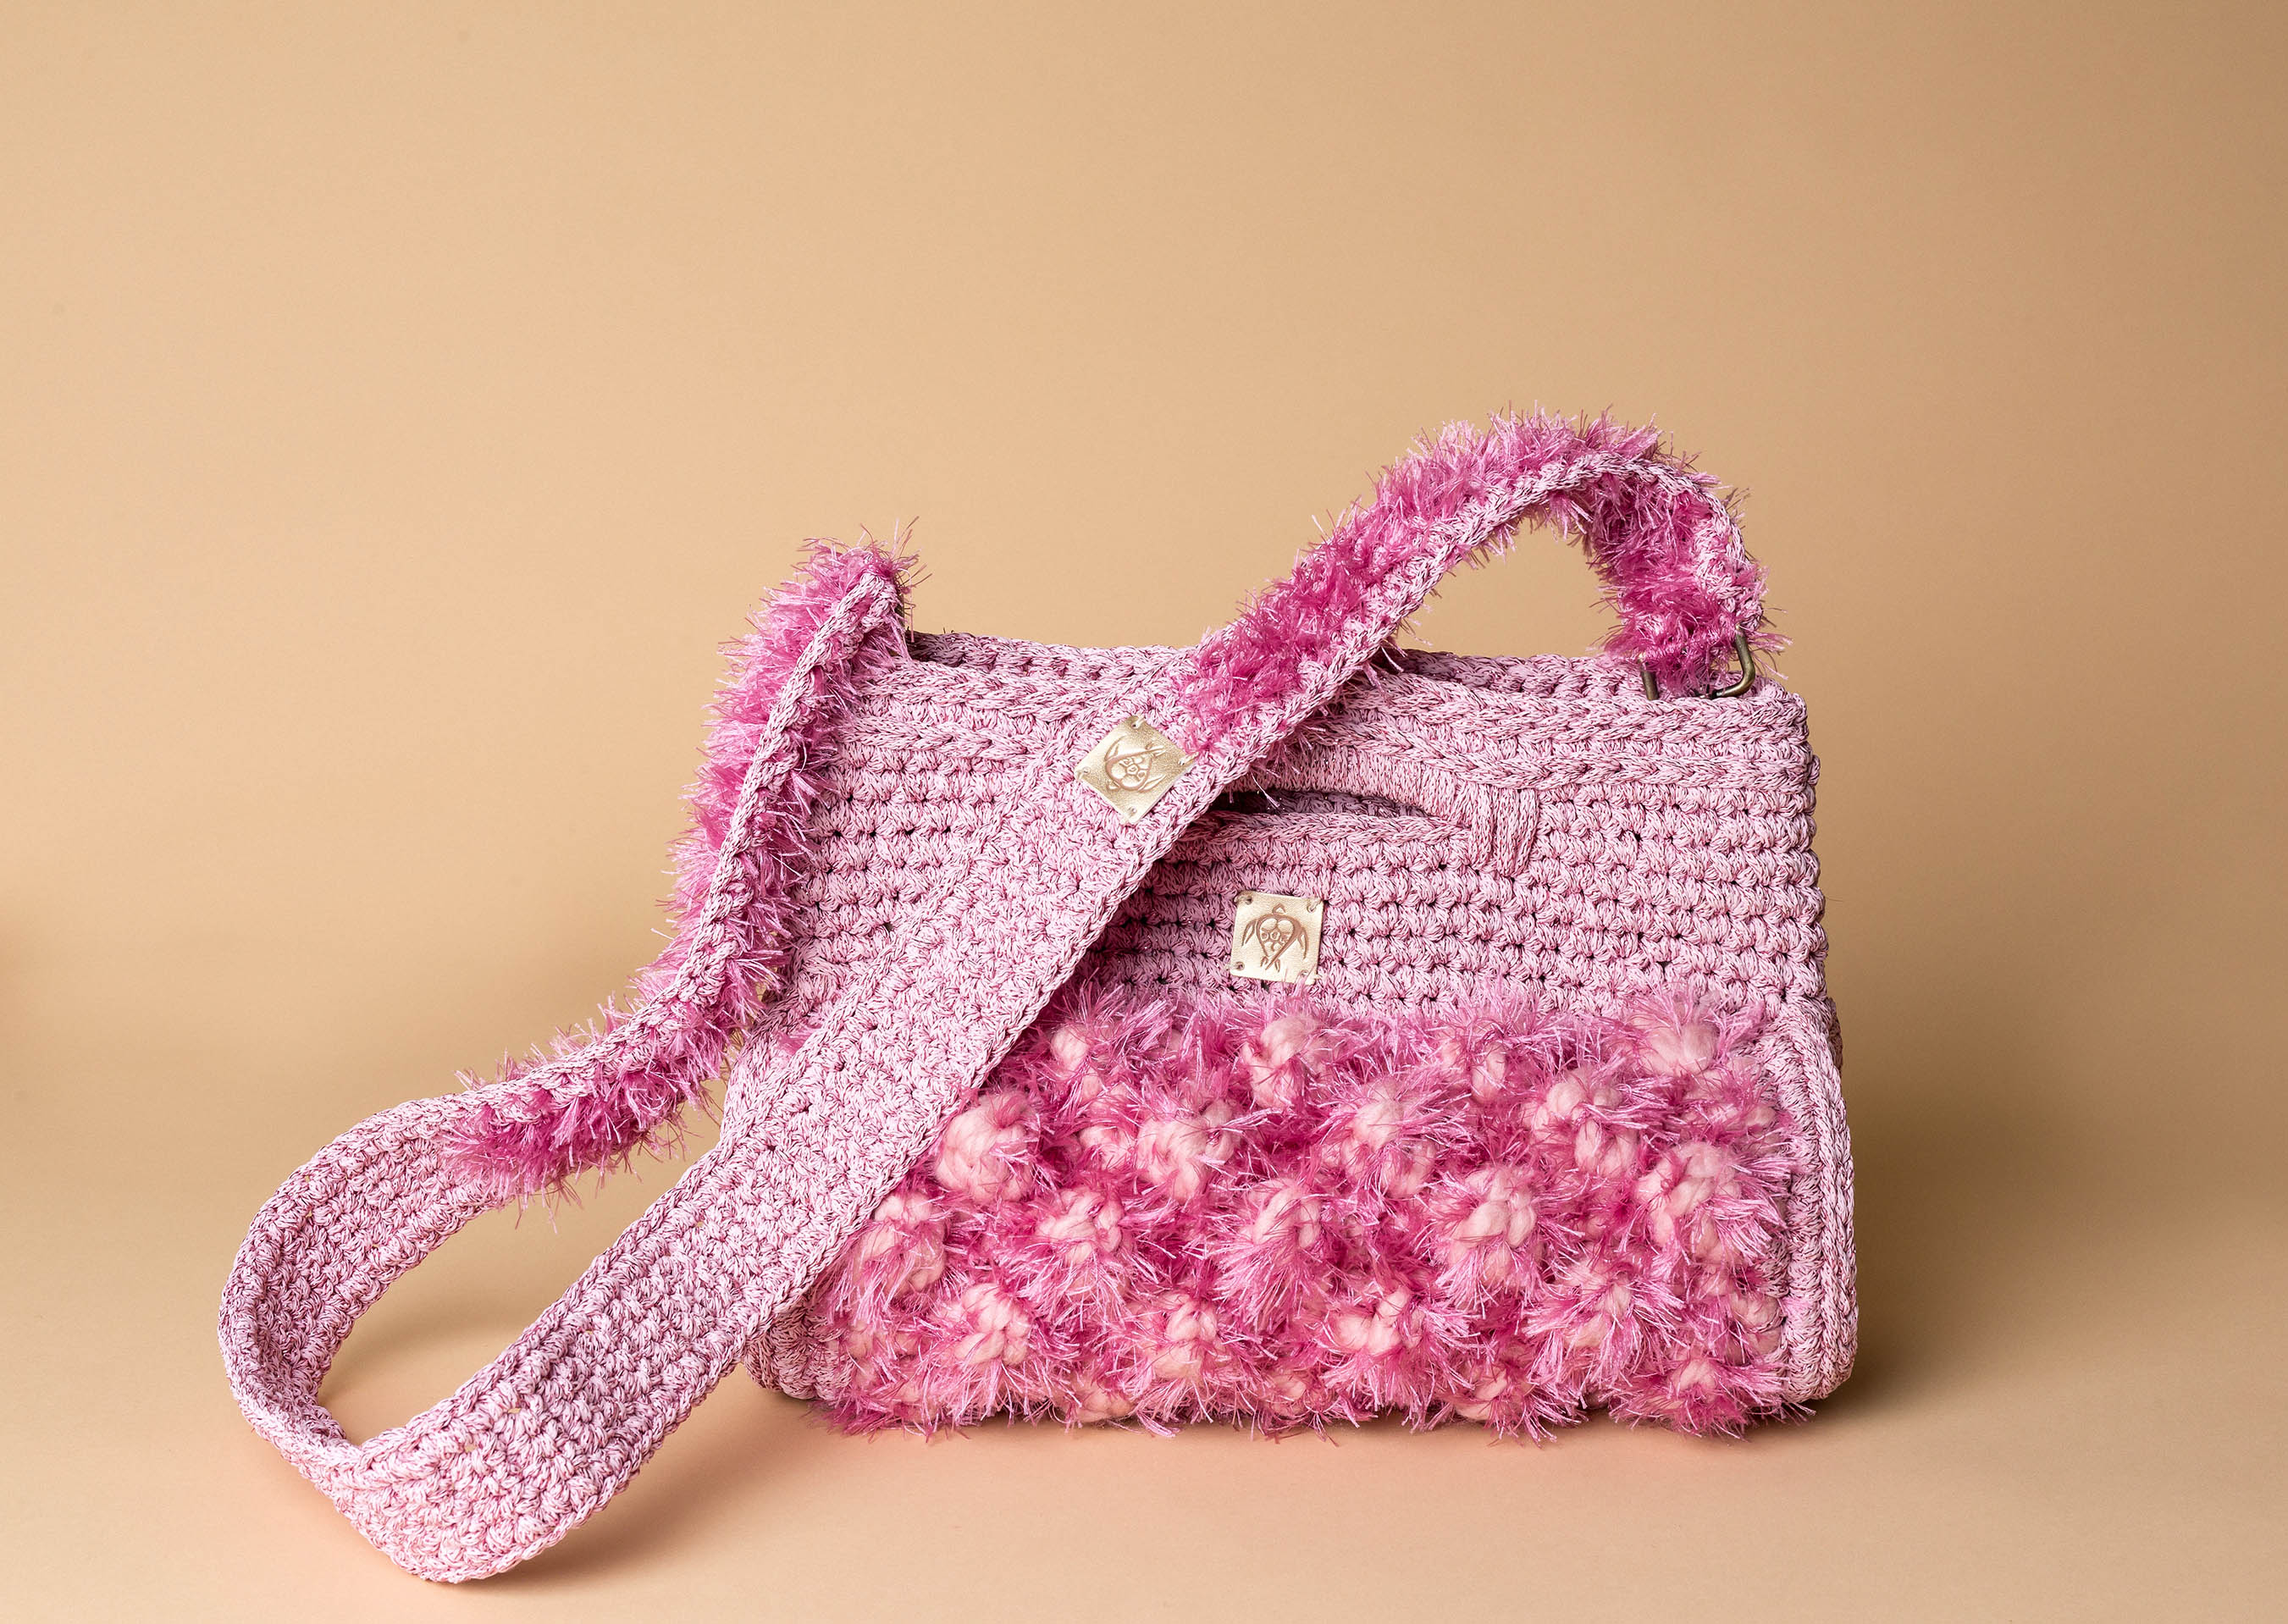 knitted handbag in pink